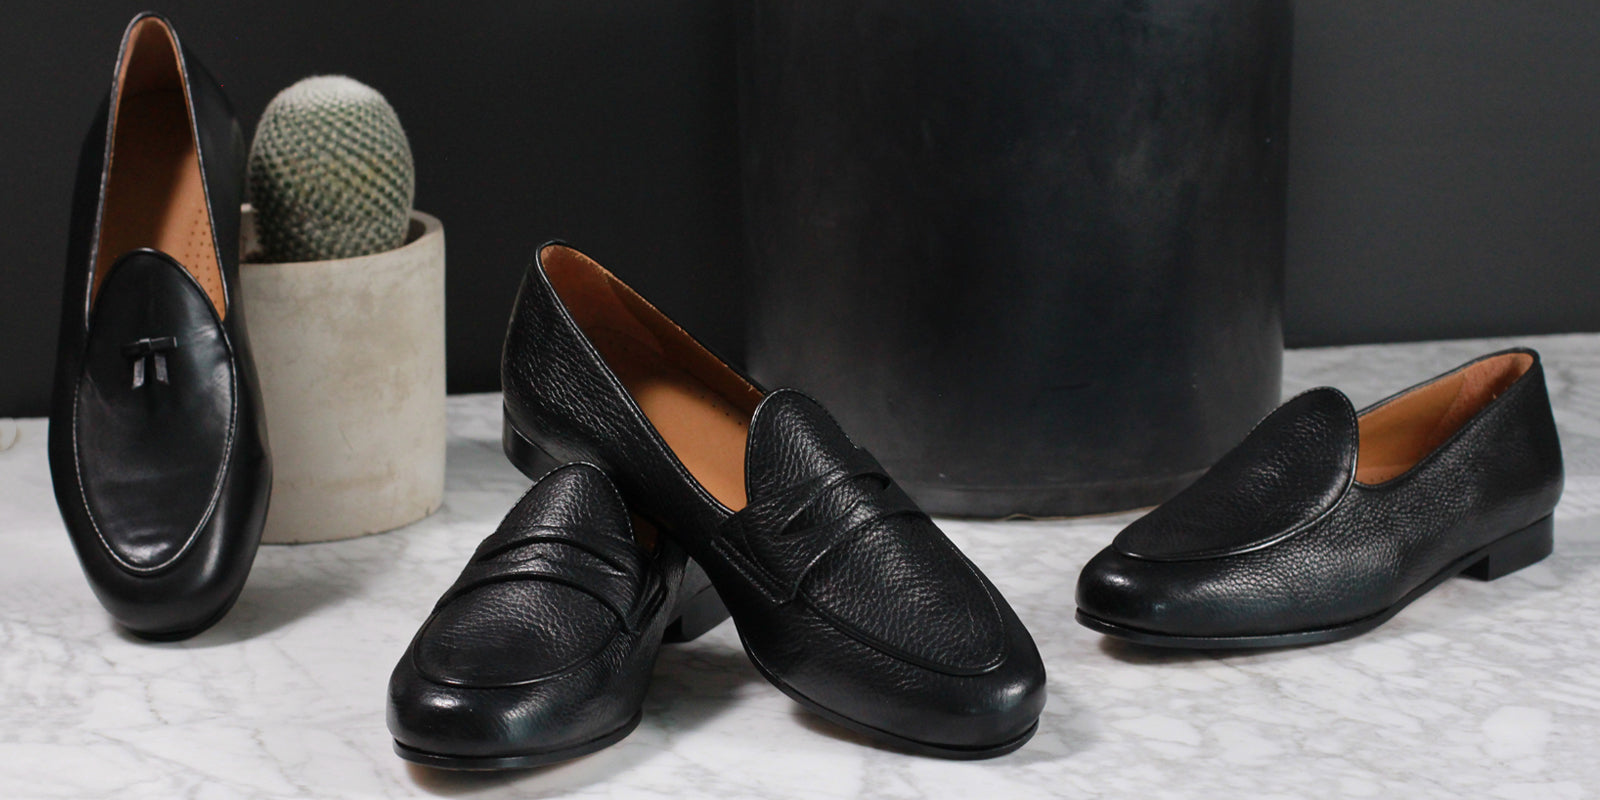 BOMBEROS Black Belgian Penny Loafer Collection